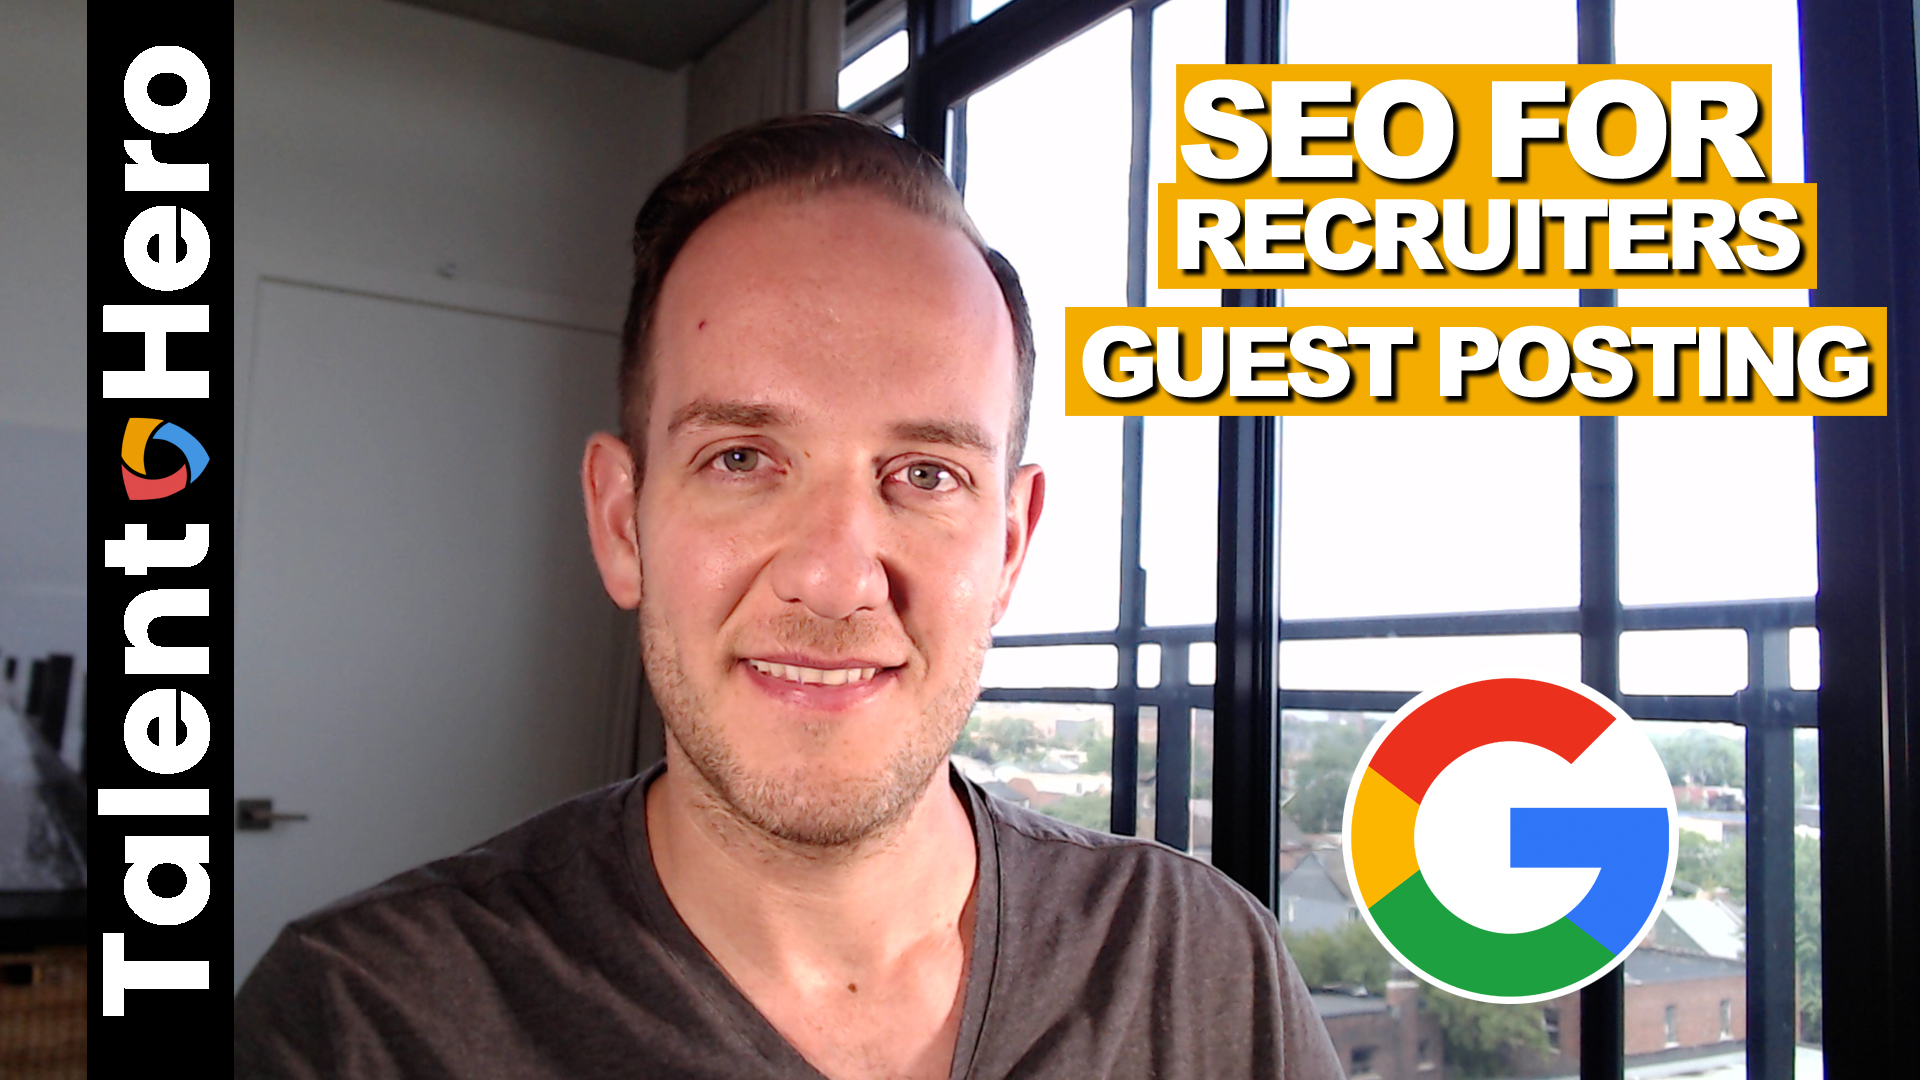 SEO-For-Recruiters-Guest-Posting-Thumbnail